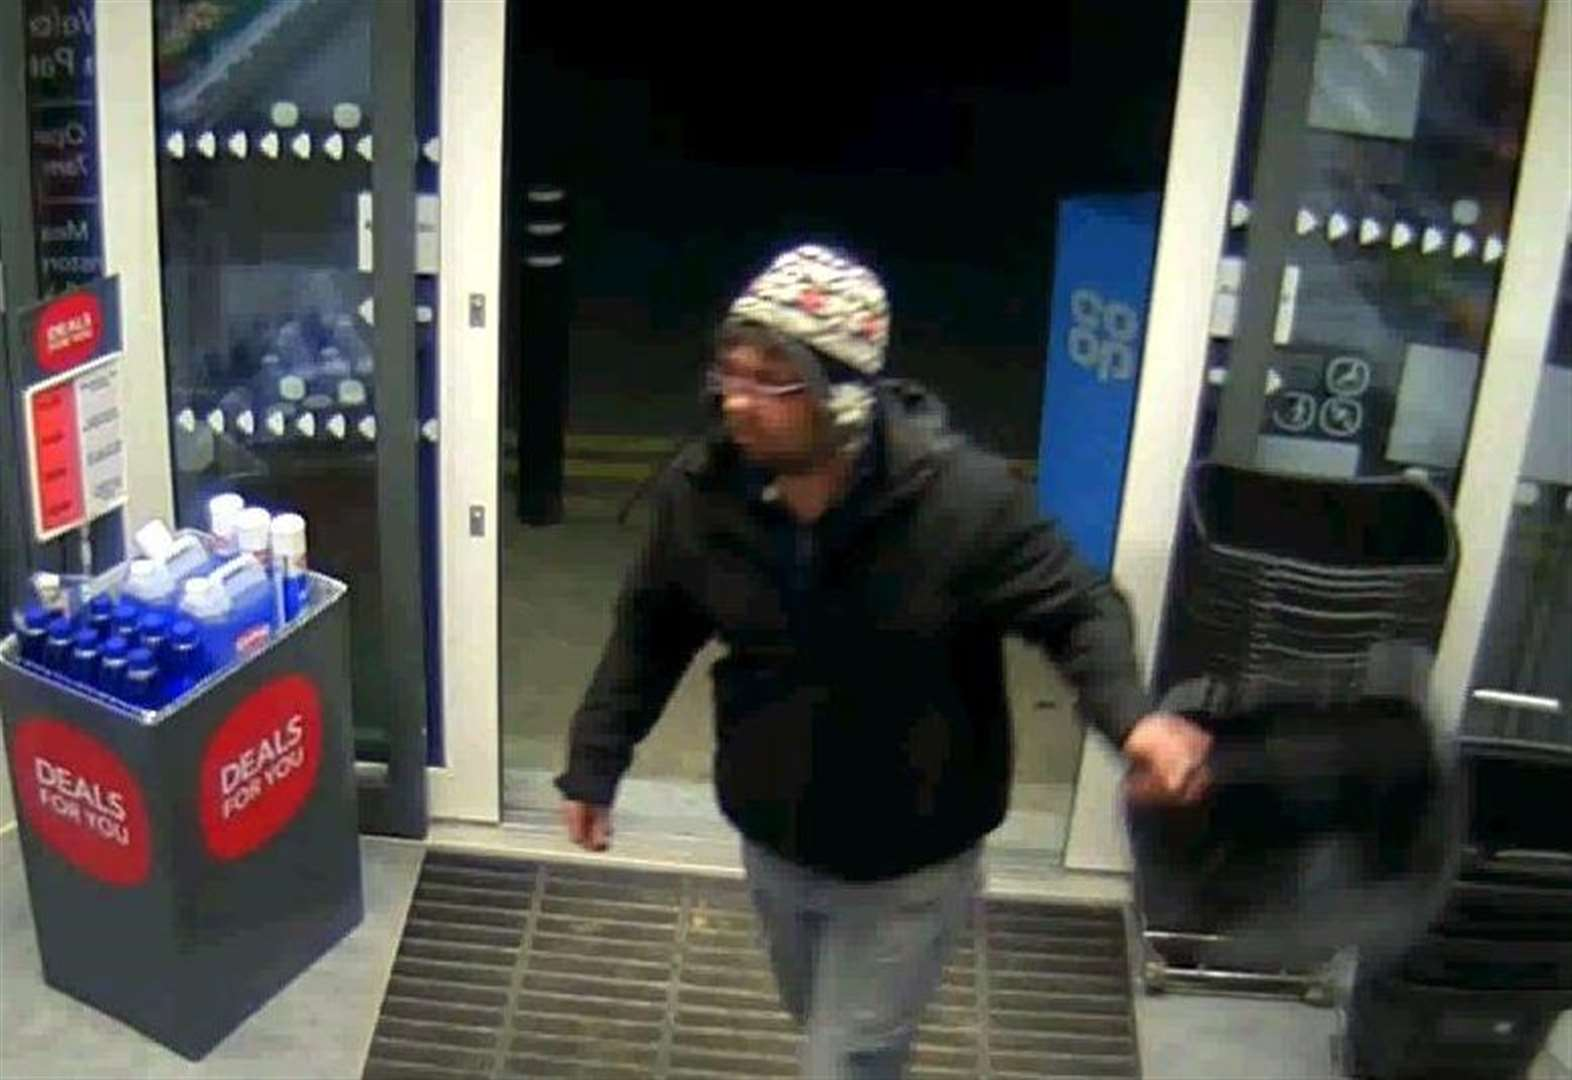 Man is sought over theft from Elsea Park Co-op in Bourne